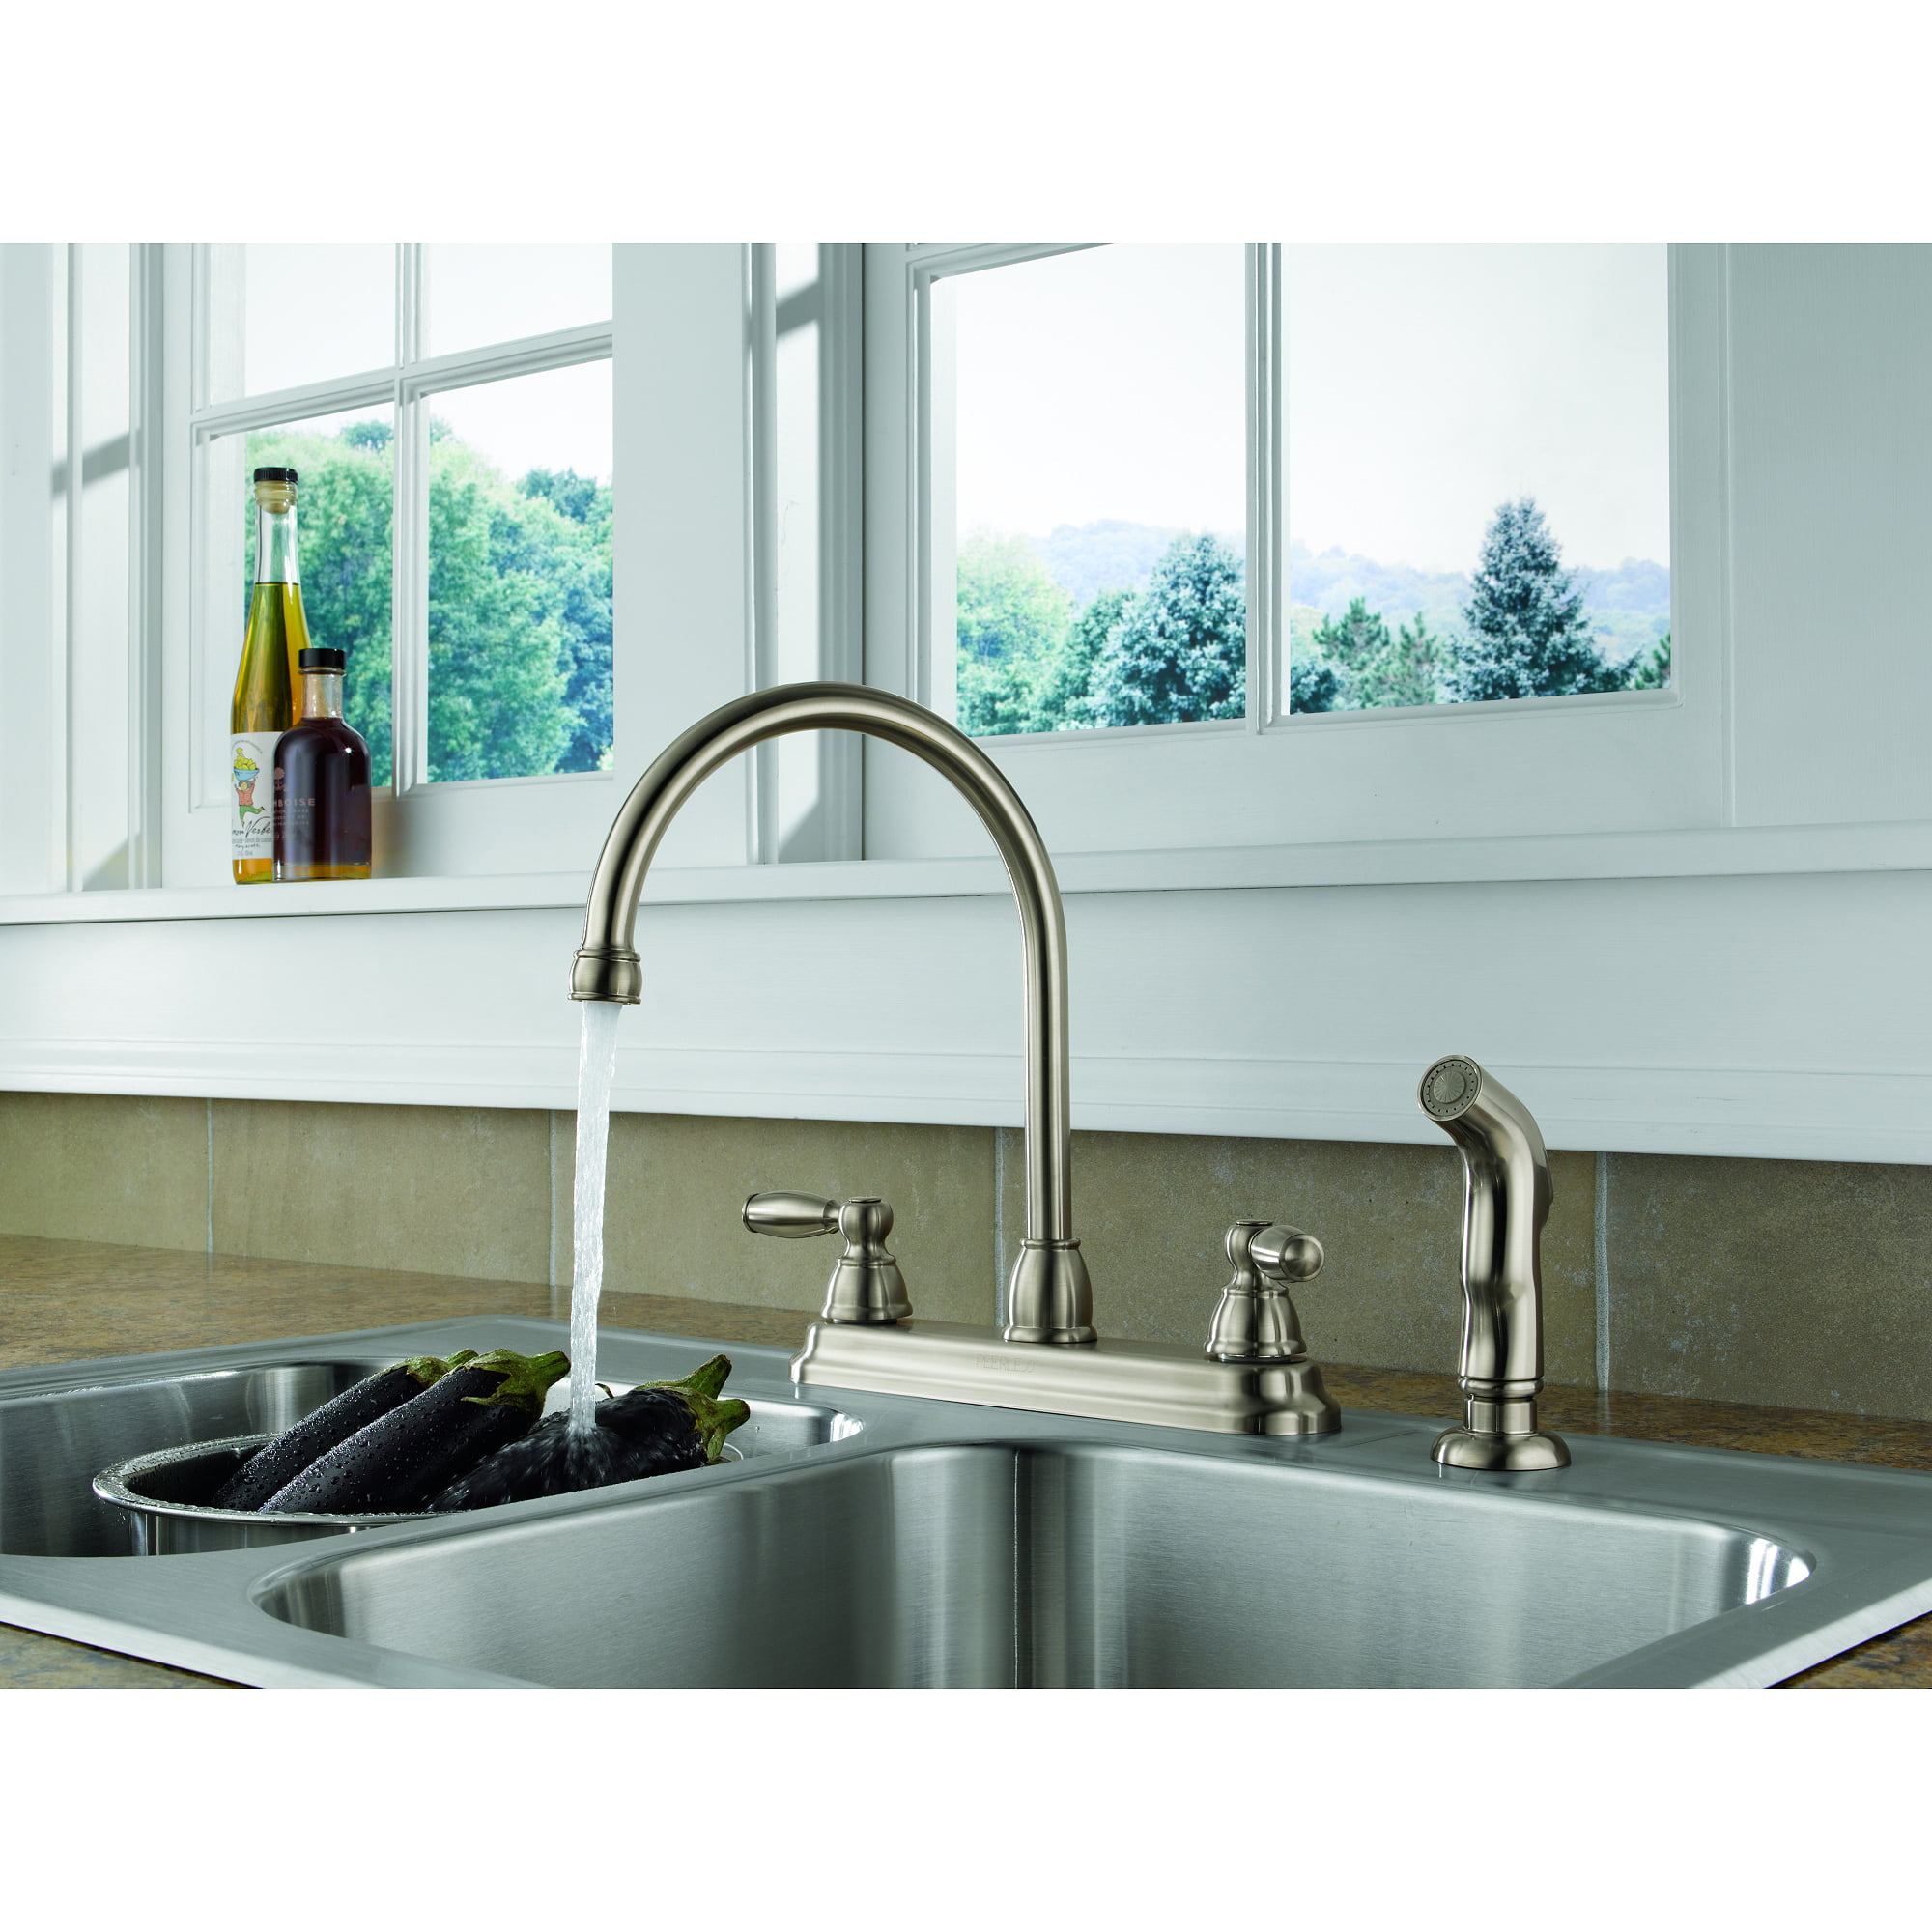 Peerless 2 Handle Lavatory Faucet With Side Spray, Stainless Steel    Walmart.com